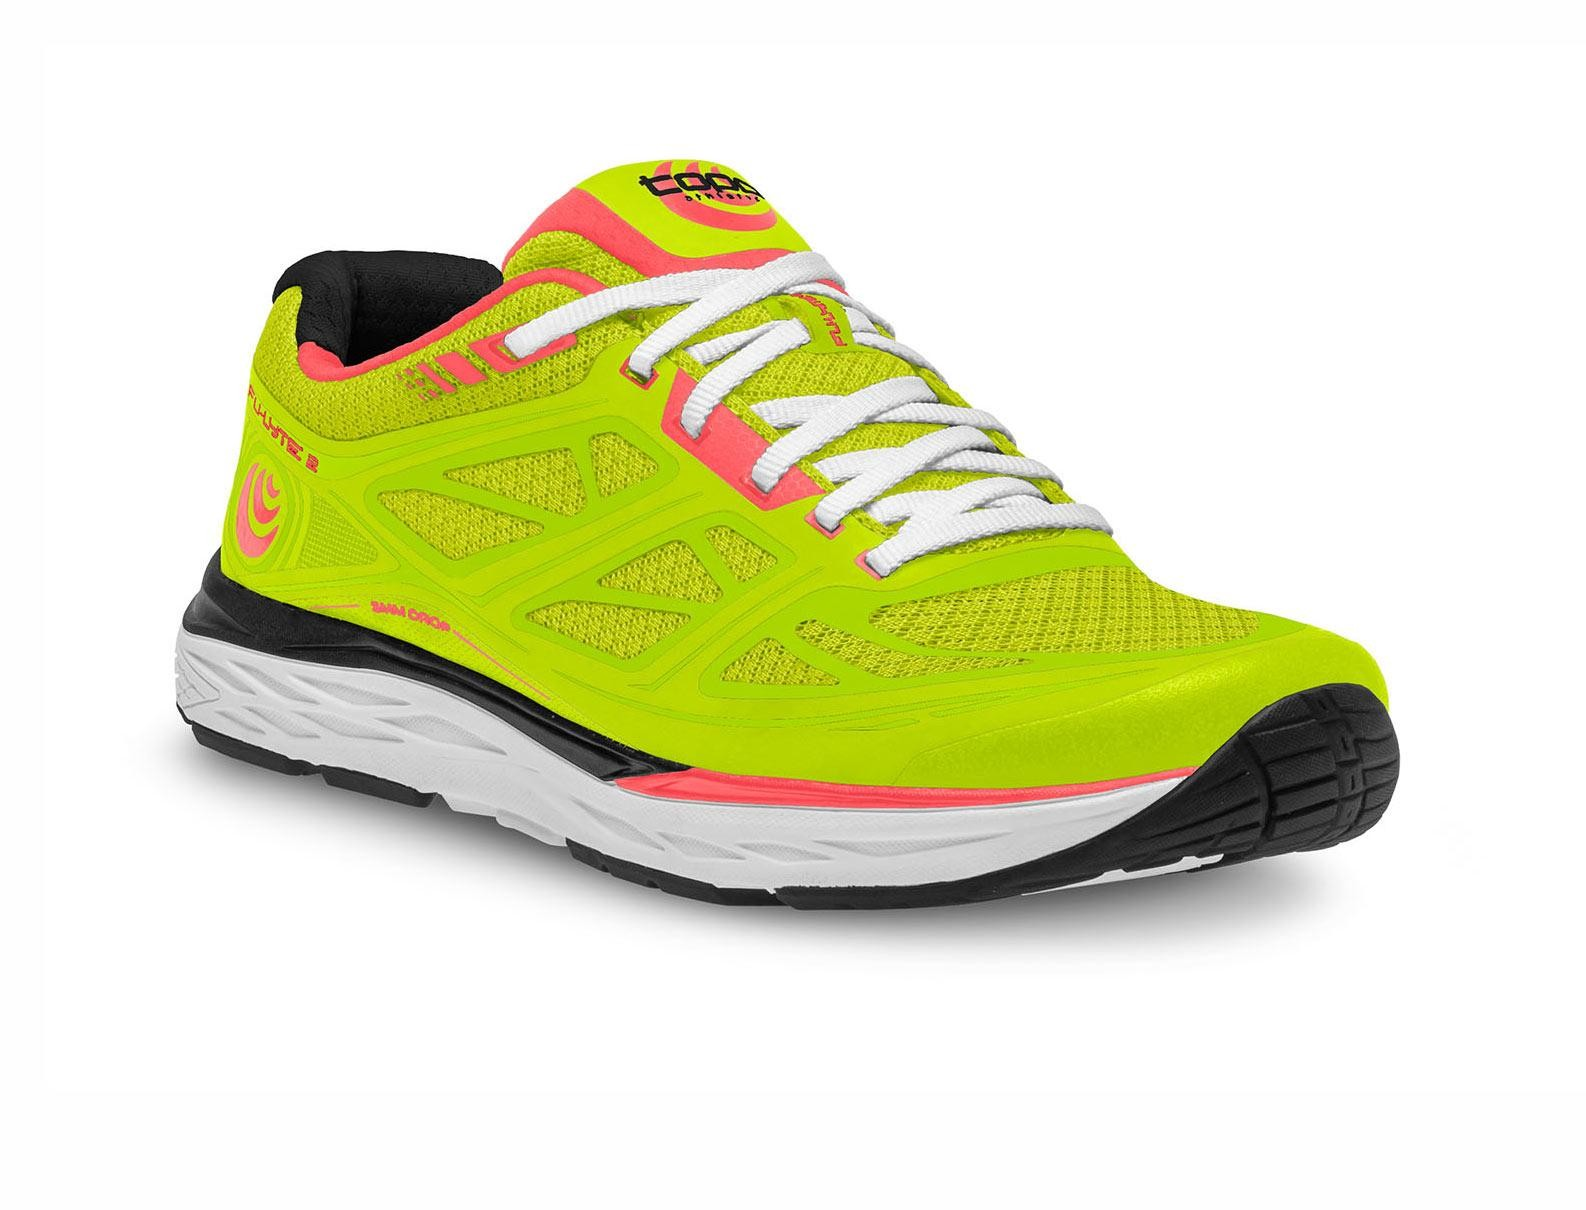 Runner's World - Fli-Lyte 2